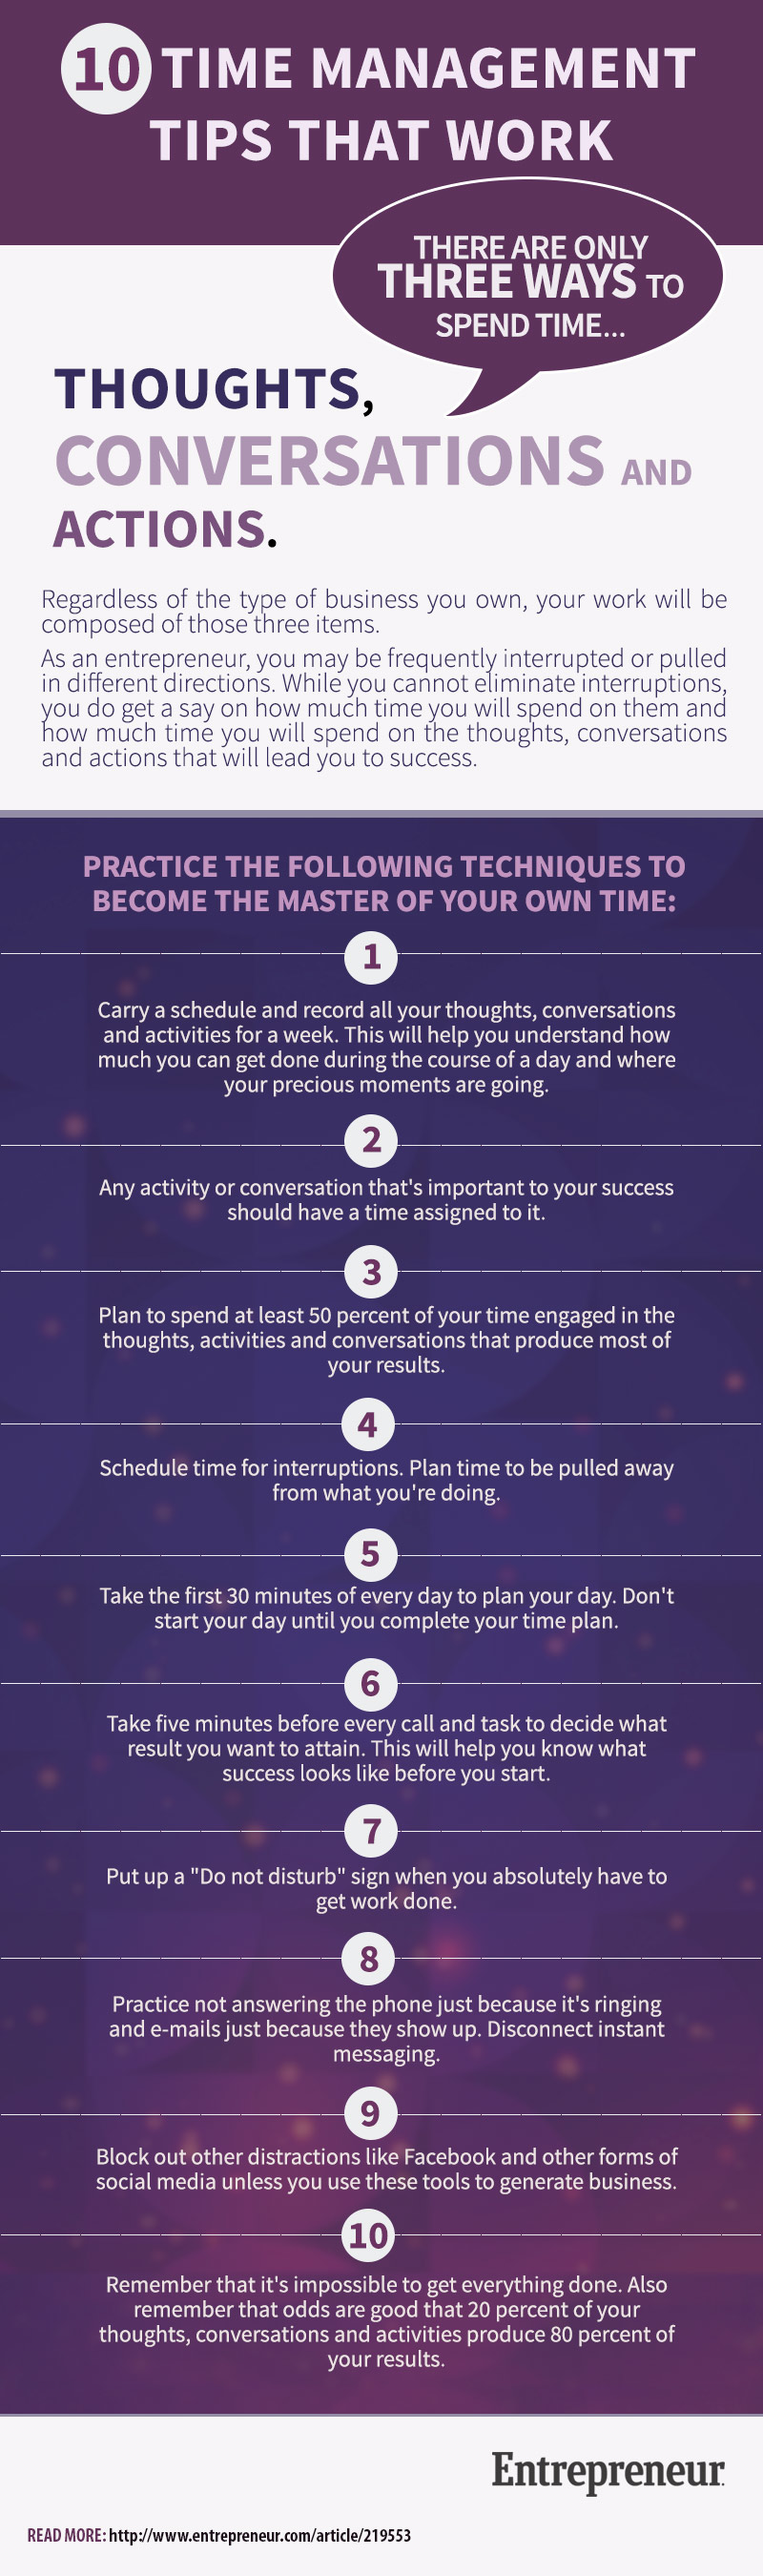 Time-Management-Tips